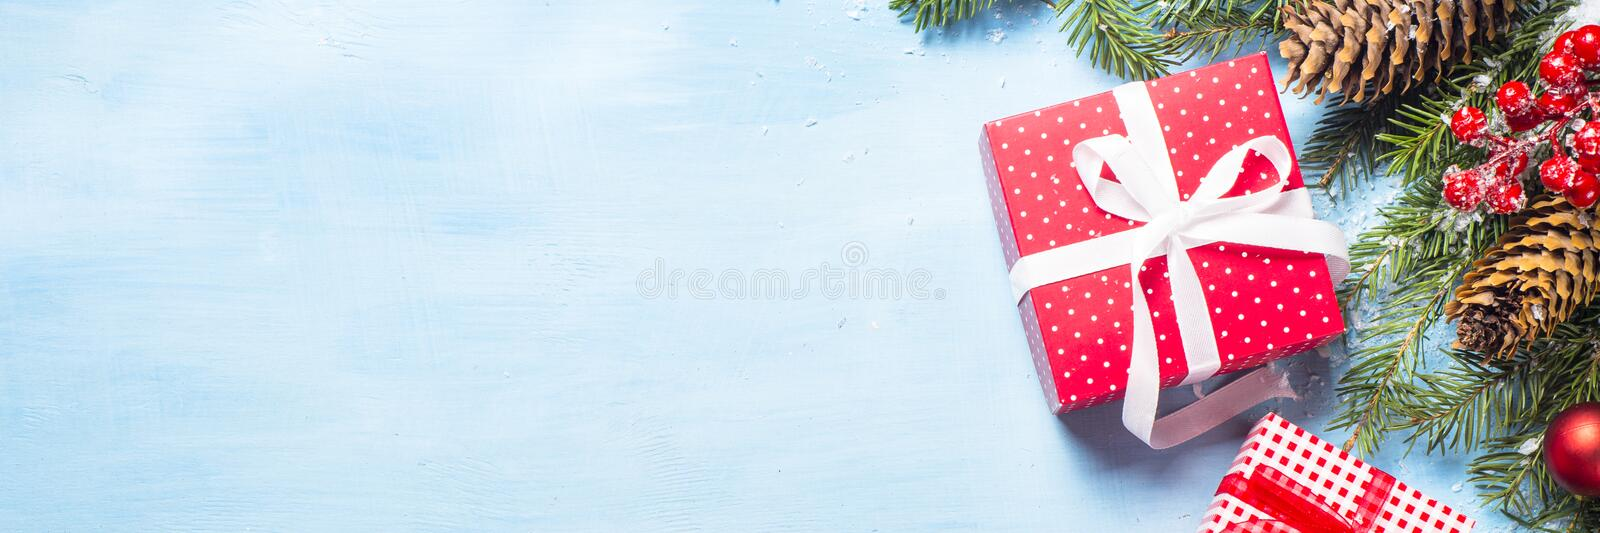 Christmas background on blue with present box and decorations. royalty free stock photography